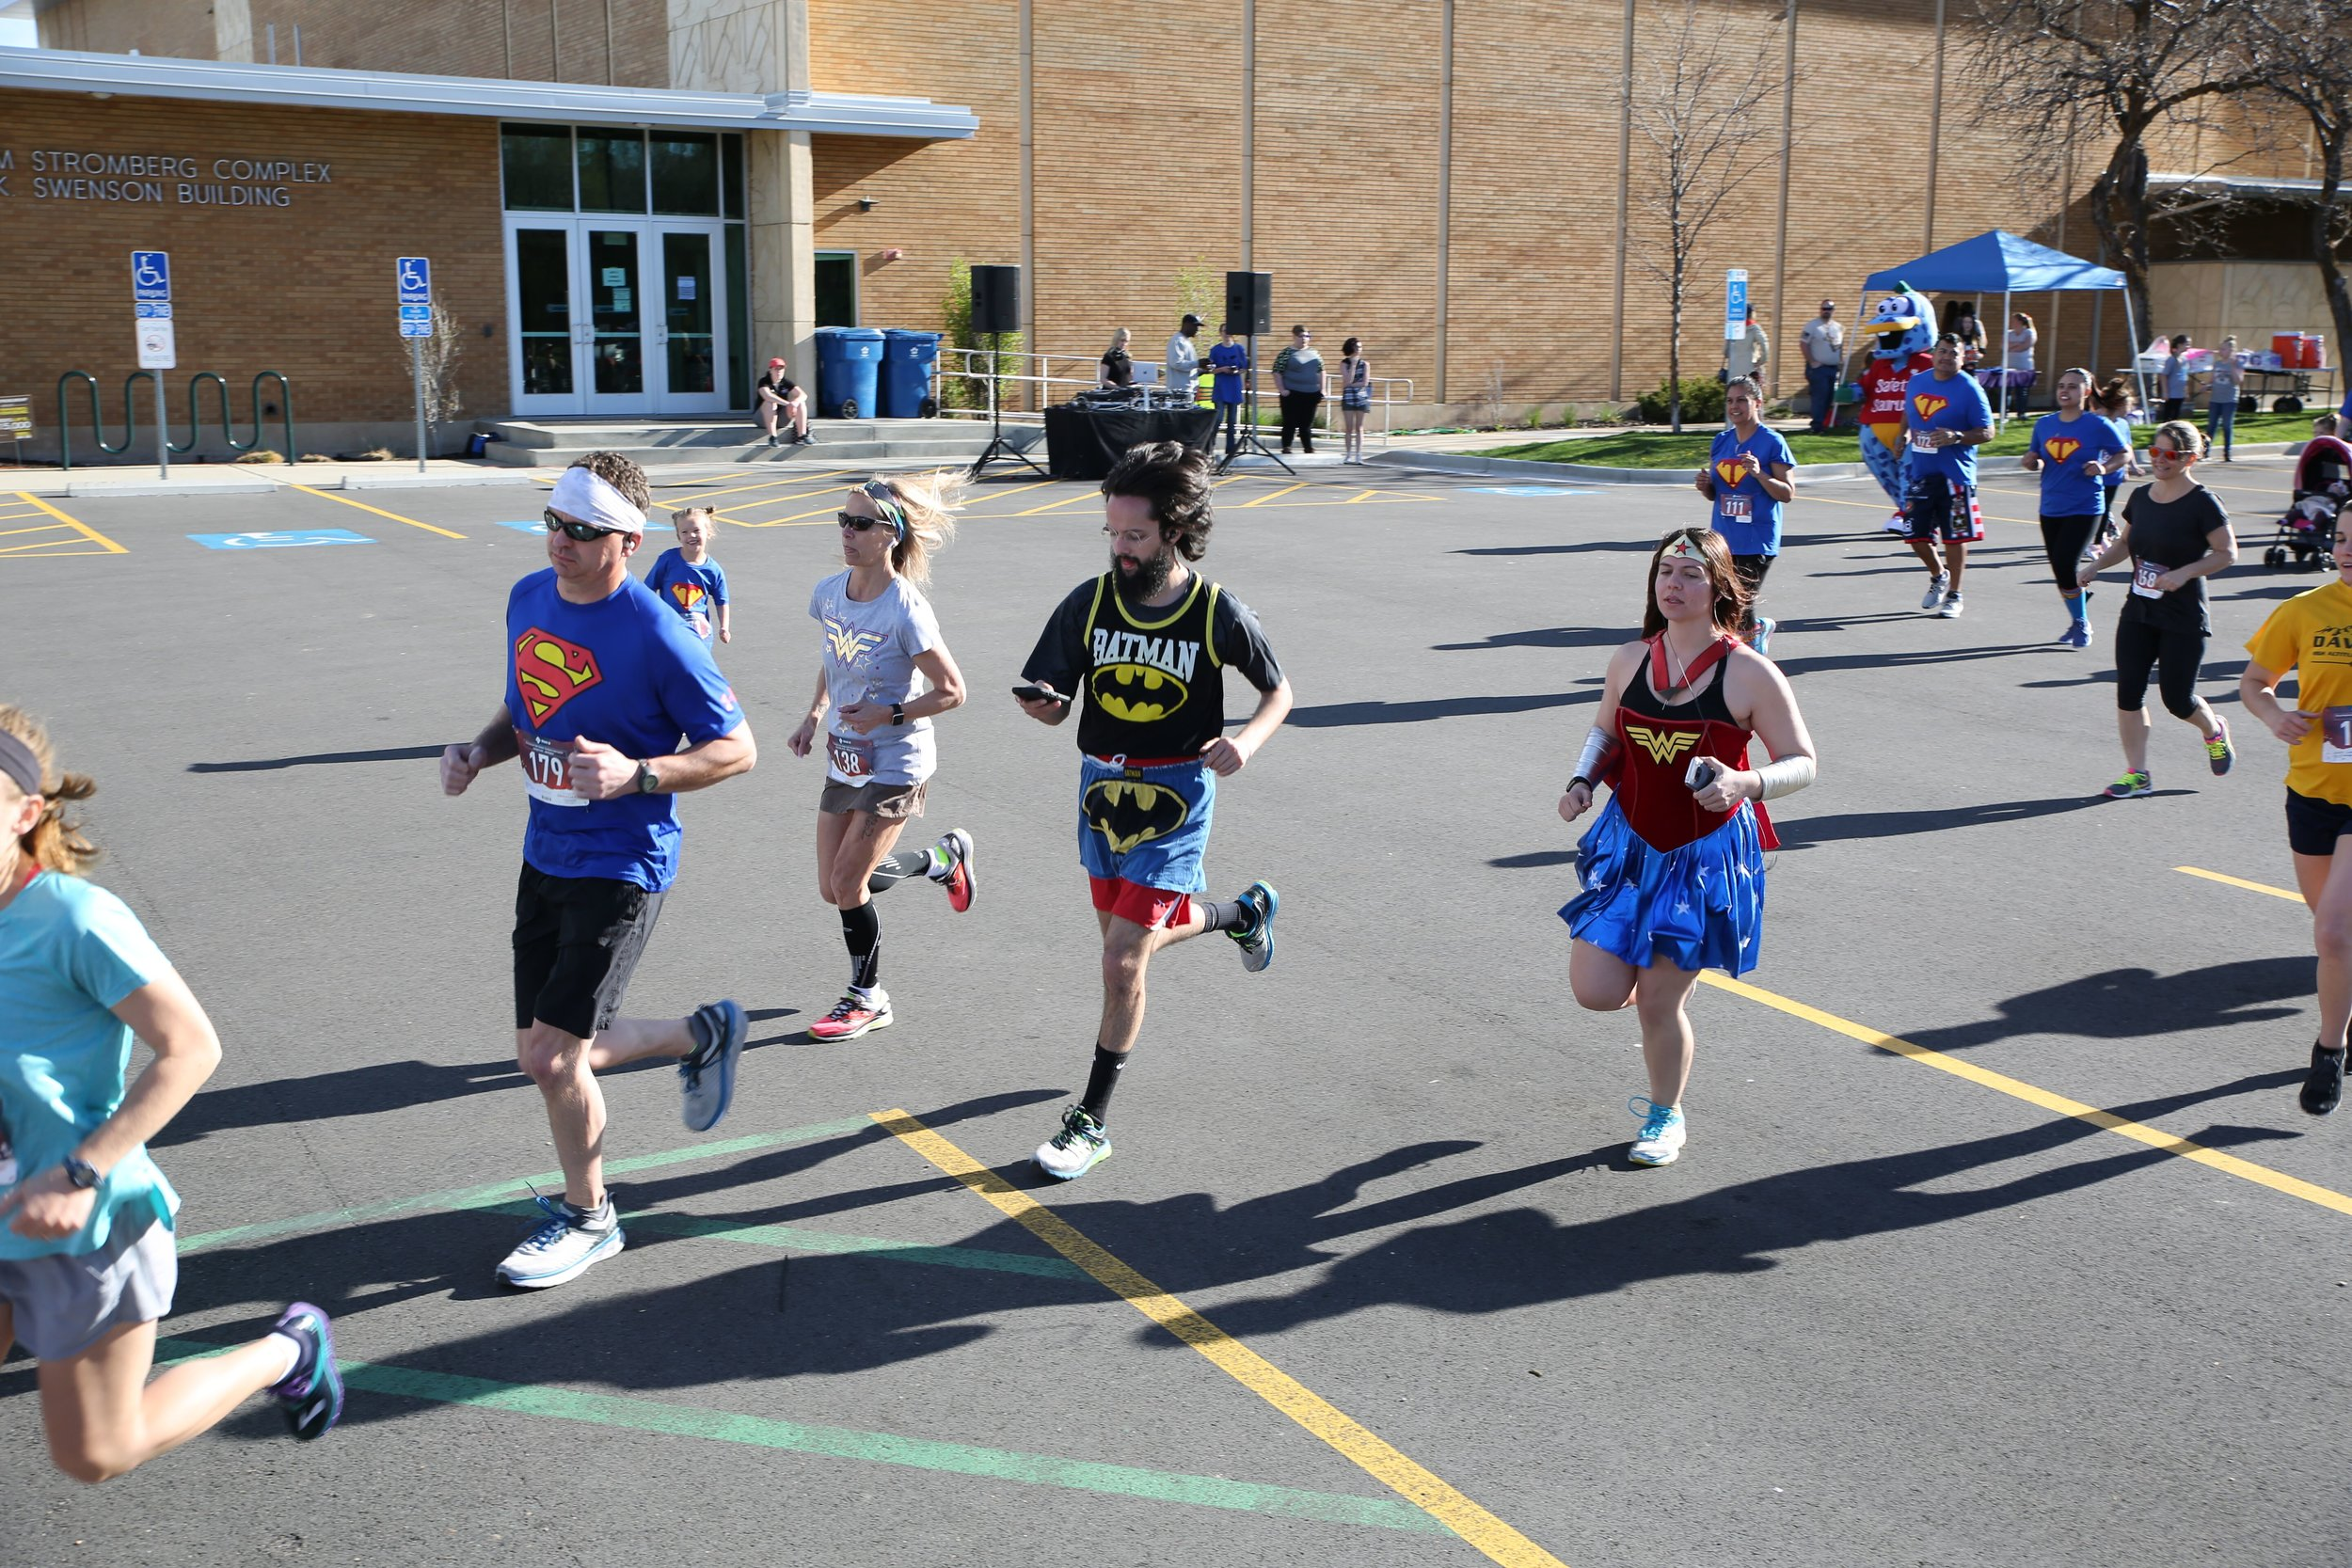 Superhero hop 5k and kids run - April 20, 20199:00 a.m.A fundraiser to benefit Prevent Child Abuse Utah. Superhero themed!